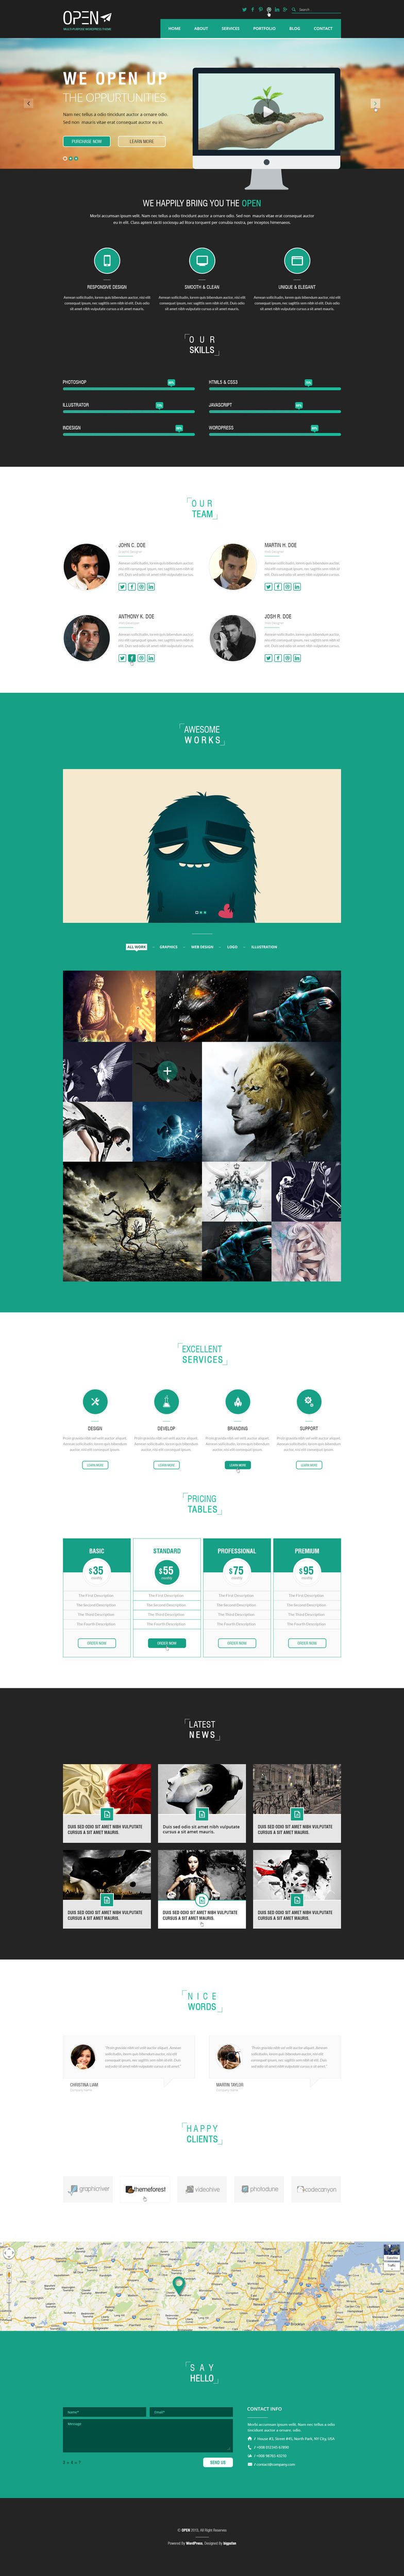 Blogger to WordPress Migration by Jewel_Theme - 66702